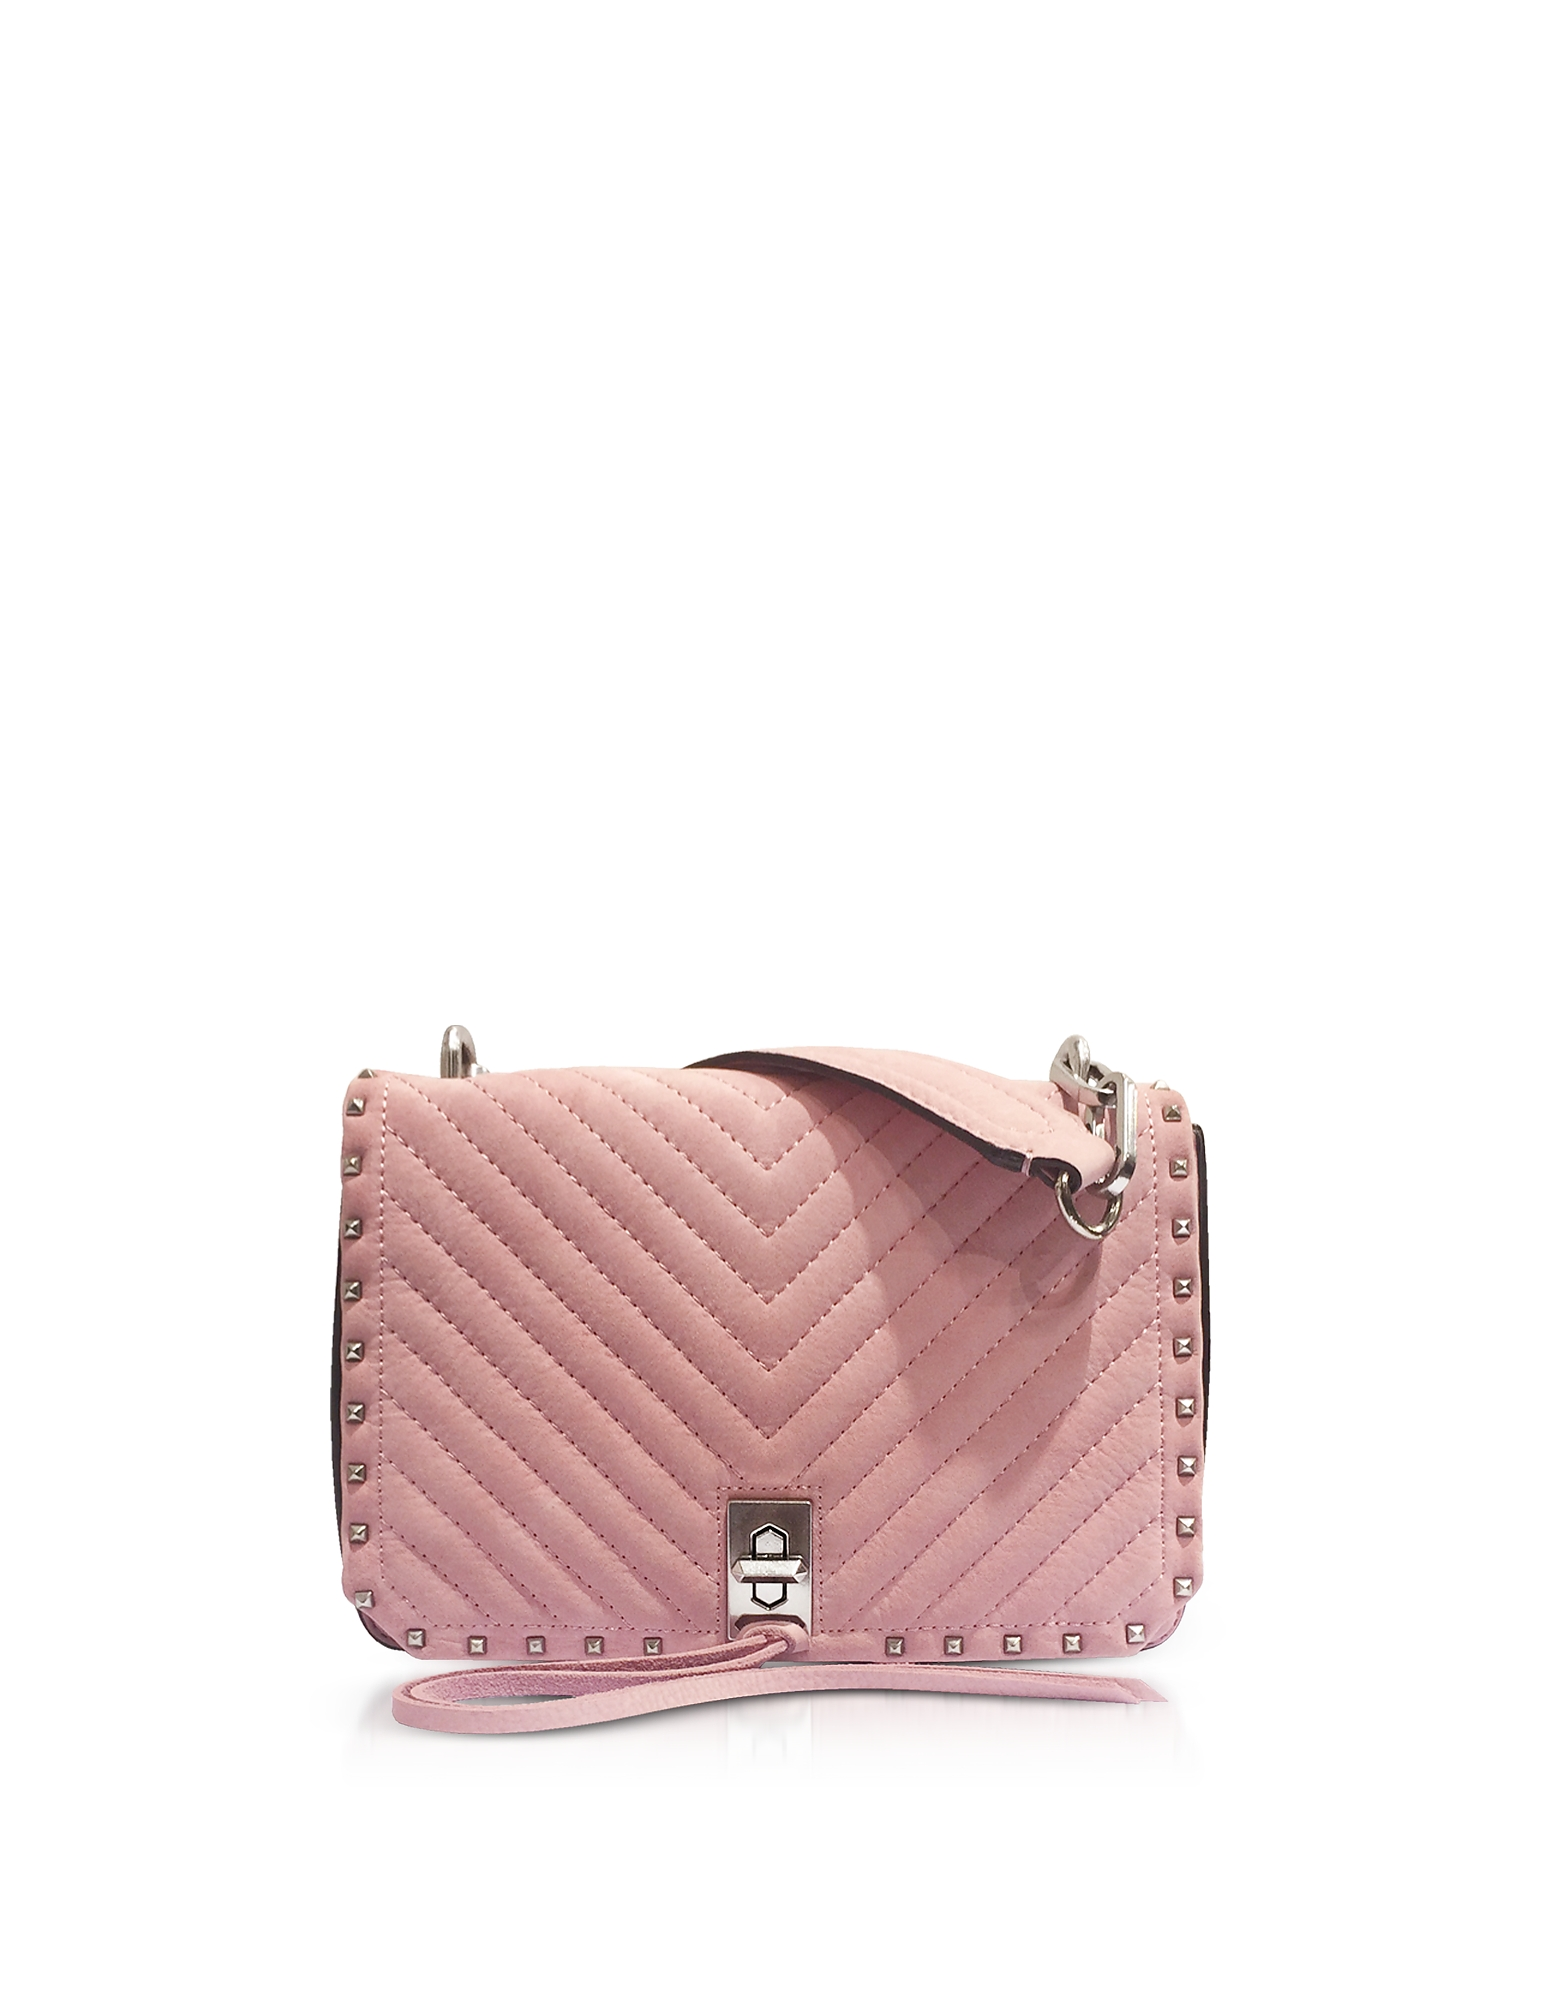 Blossom Pink Nappa Leather Small Becky Crossbody